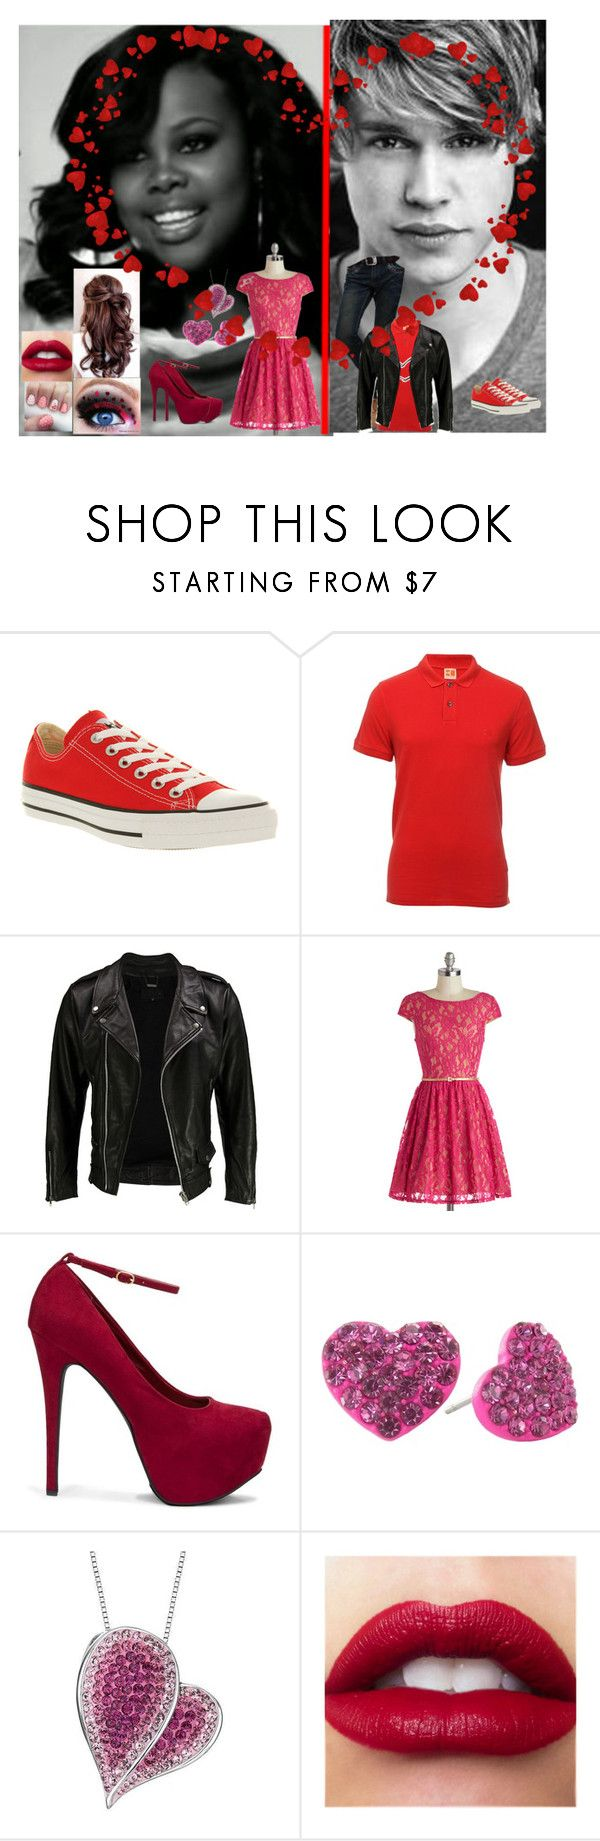 """""""Glee: Valentin's Day:Mercedes and Sam"""" by glee2shake ❤ liked on Polyvore featuring Riley, SAM., Converse, BOSS Orange, VIPARO, JustFab and Reeds Jewelers"""